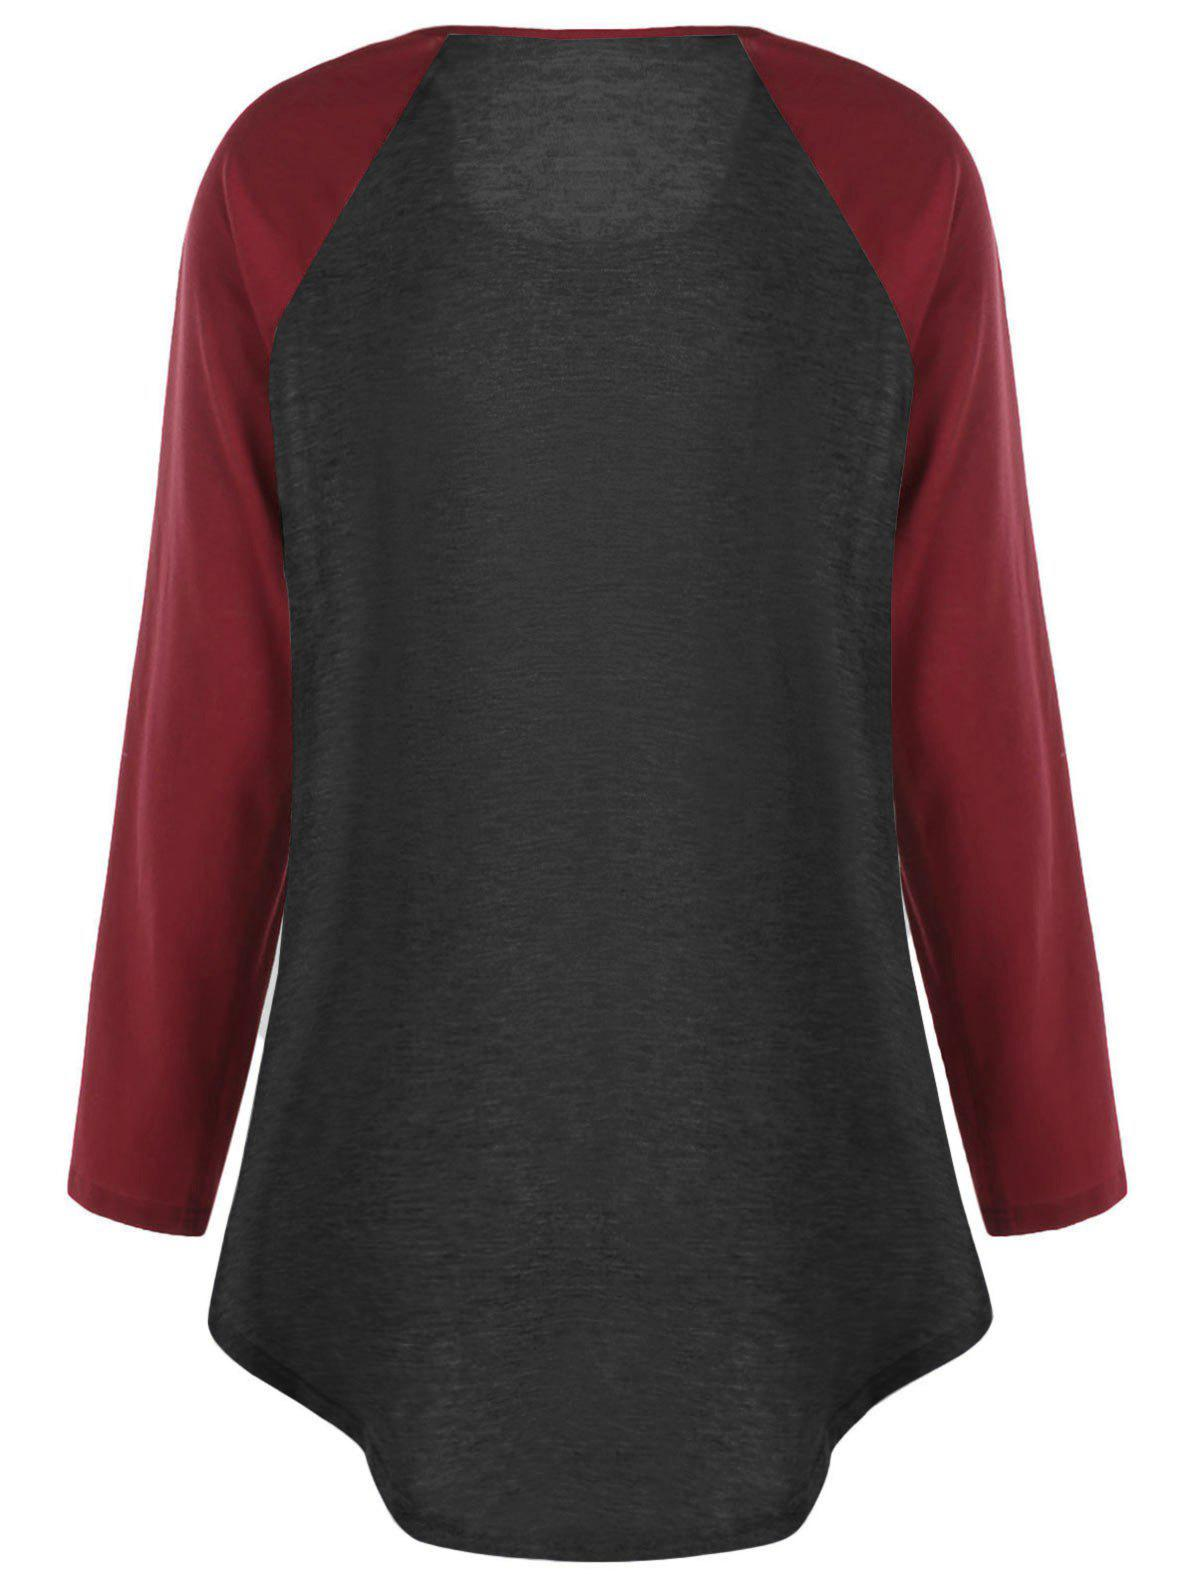 Plus Size Two Tone Raglan Sleeve T-shirt with Buttons - BLACK/RED 3XL